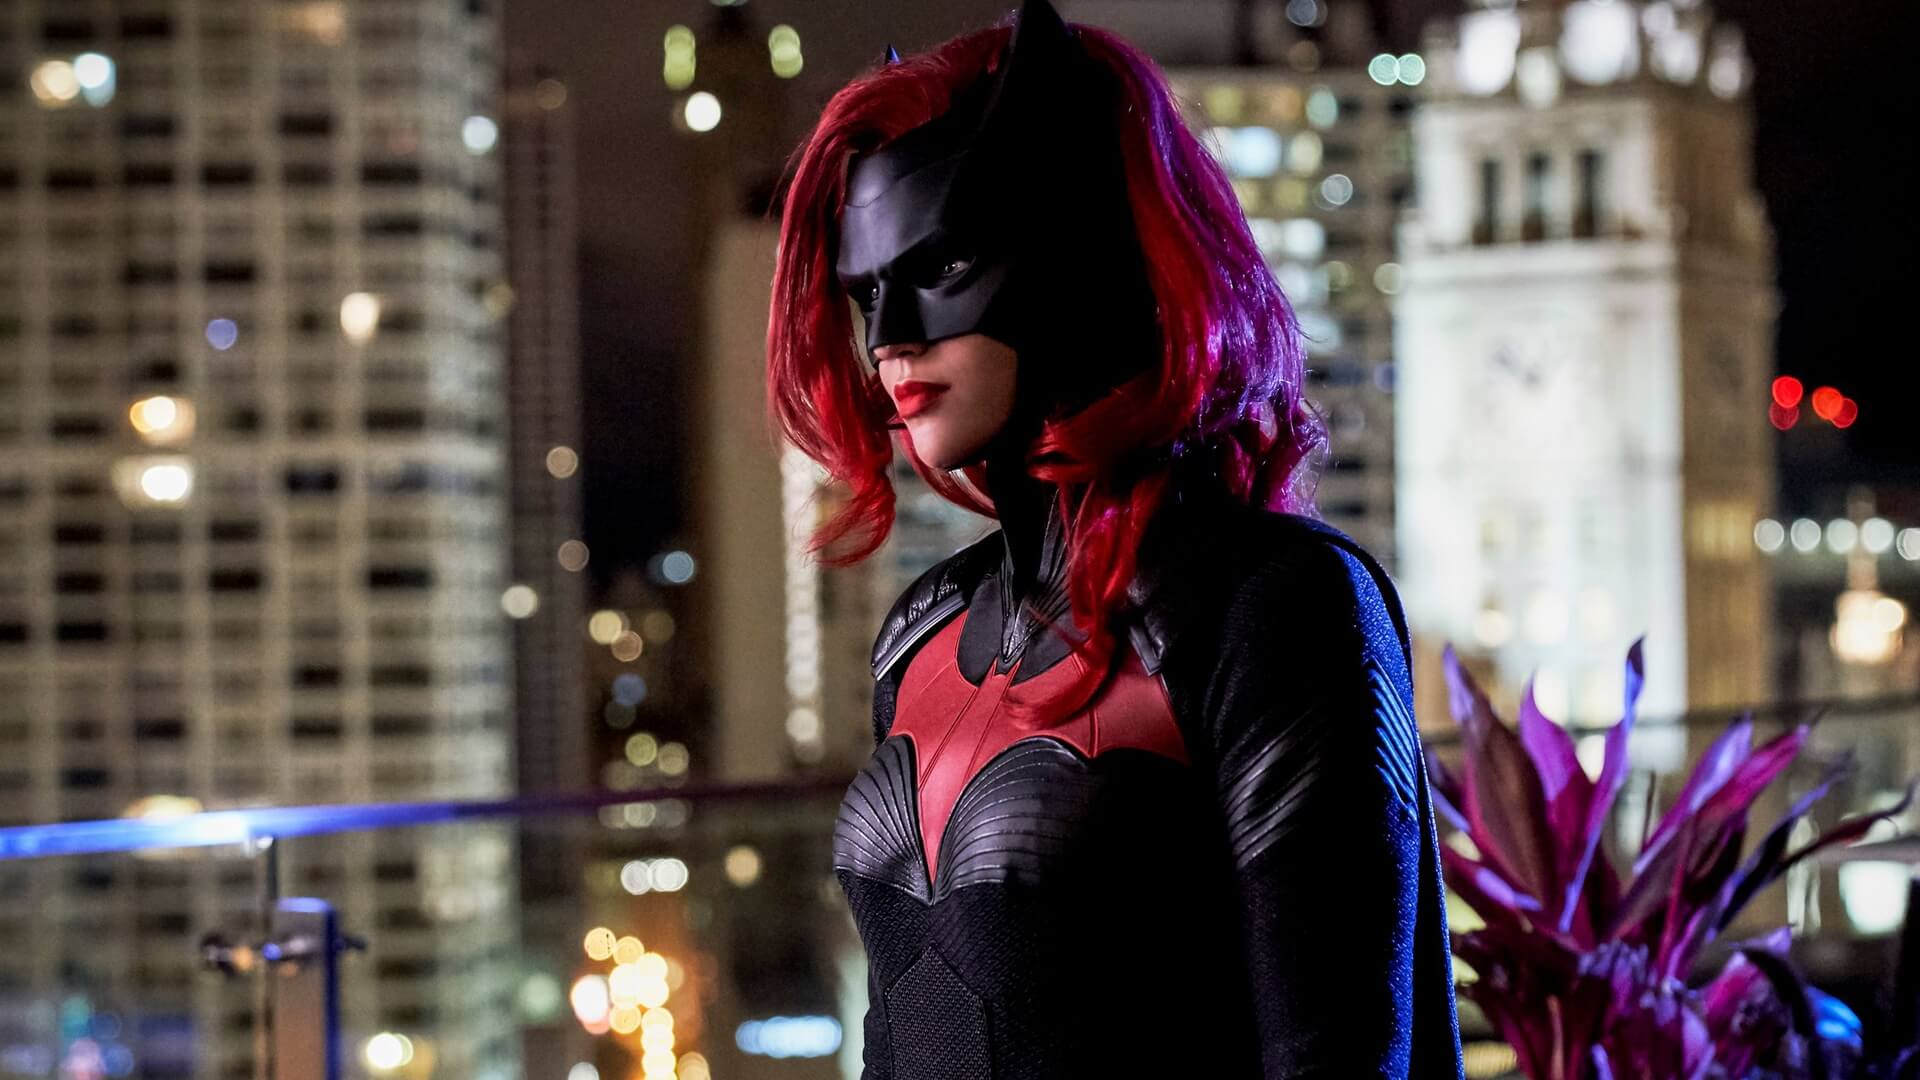 BAtwoman Rotten Tomatoes Ruby Rose Full Costume